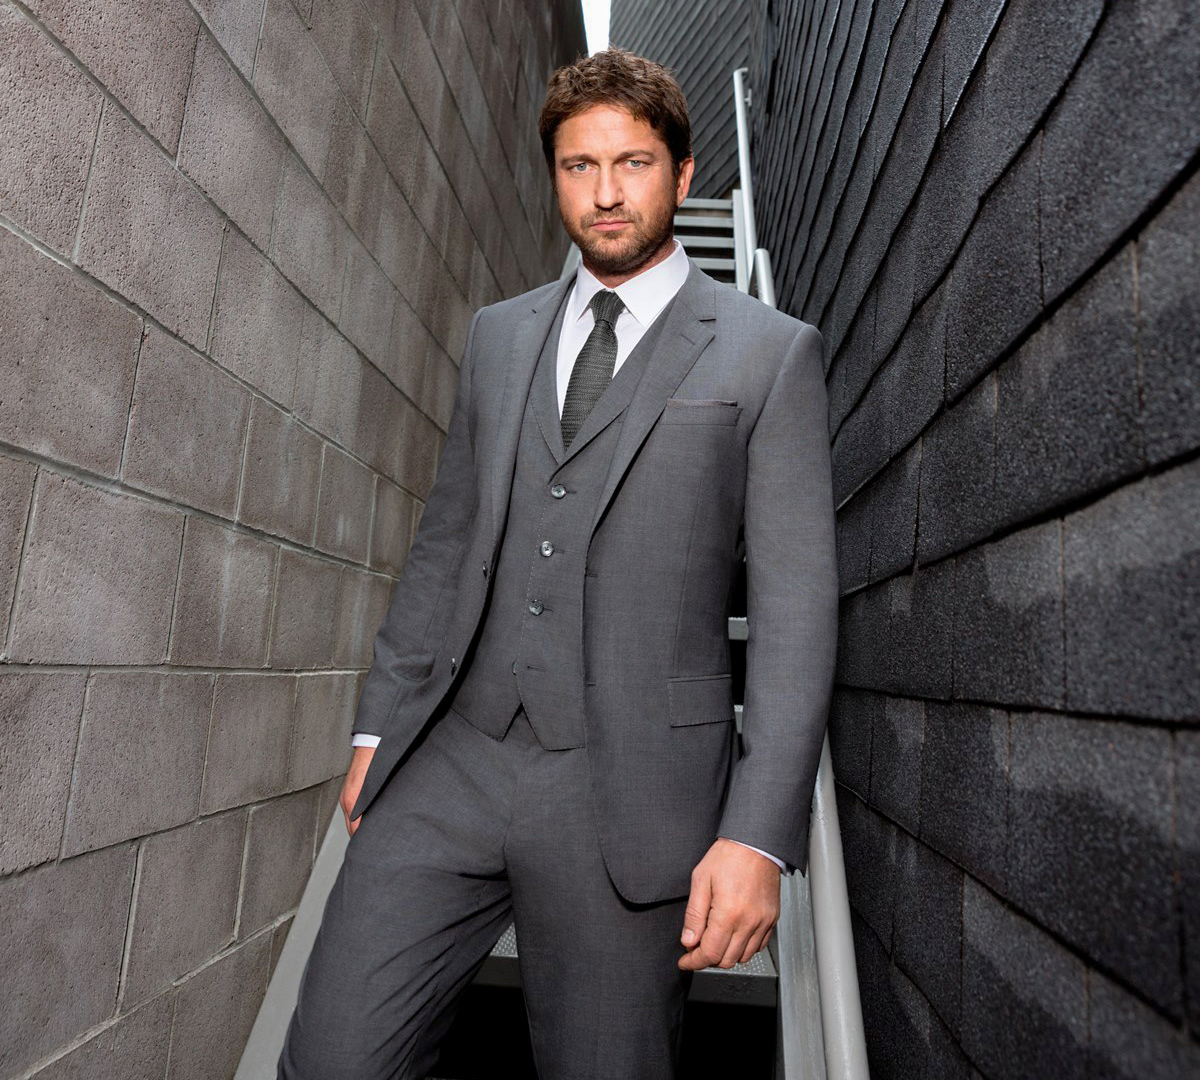 Gerard Butler in Hugo Boss suit